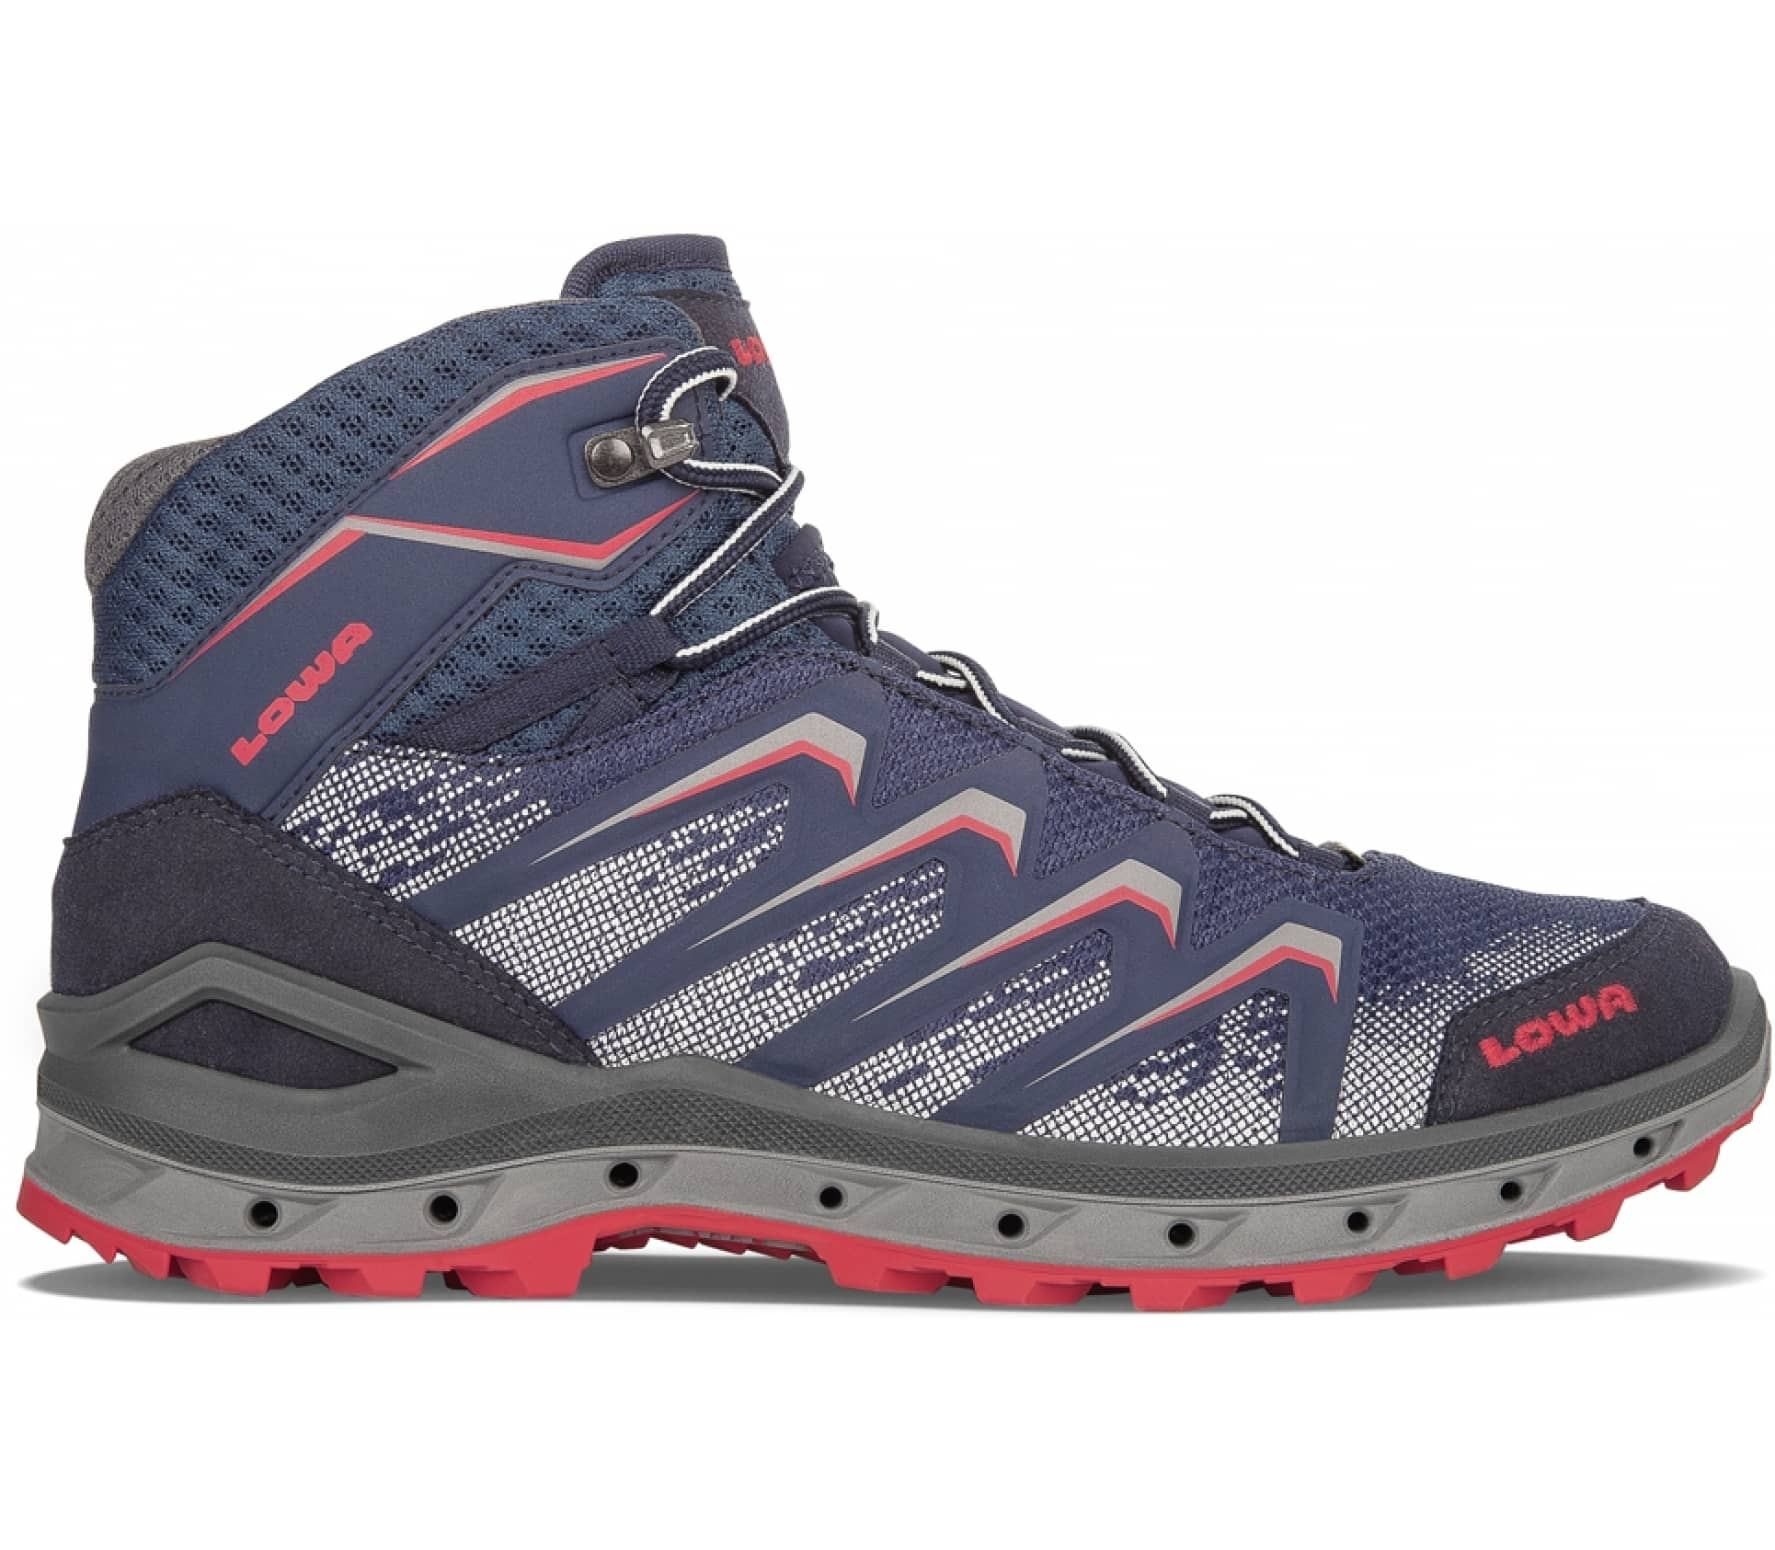 79bbc04983 Lowa - Aerox GTX® Mid men s hiking shoes (blue-red) - buy it at the ...